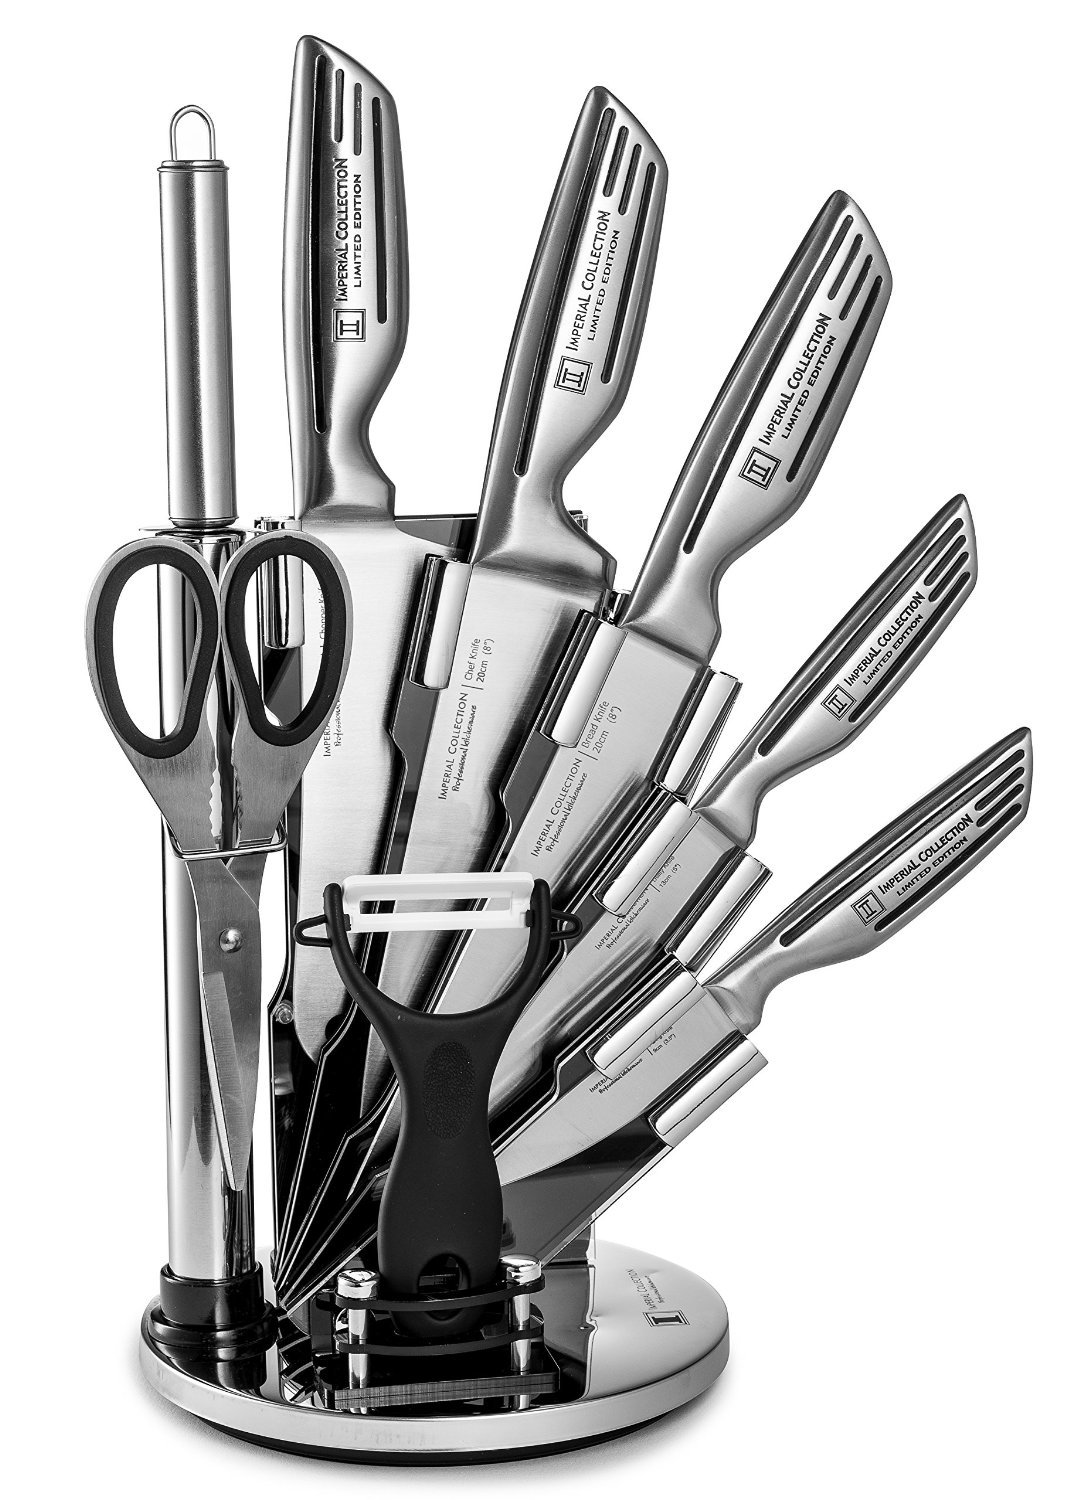 Imperial Collection 9 Piece Stainless Steel Kitchen Cutlery Knife Set With.